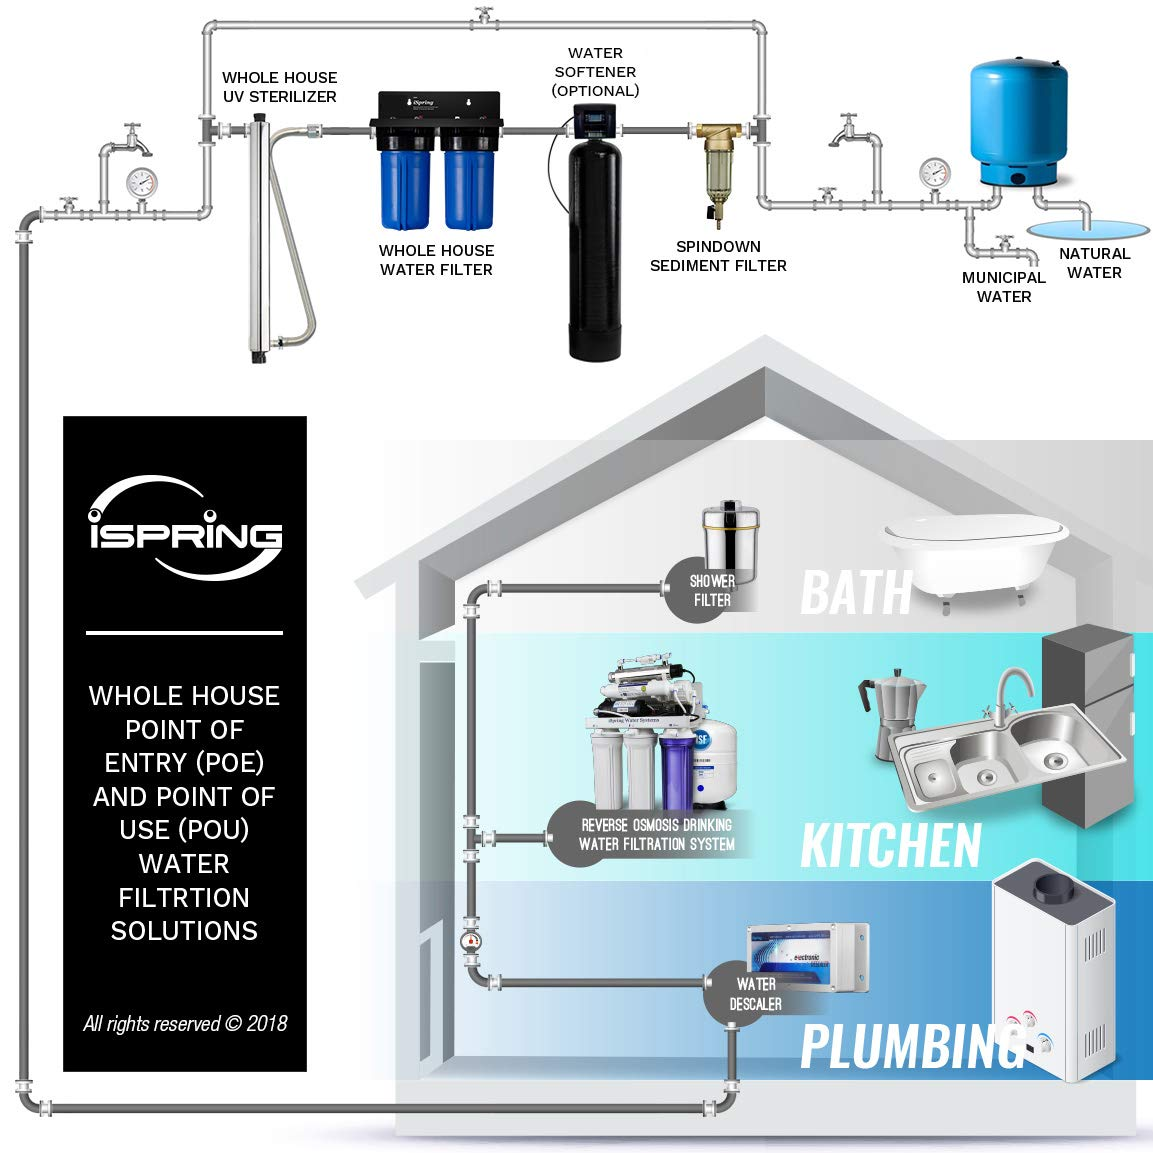 Ispring Wgb21b 2 Stage Whole House Water Filtration System W 45 X Diagram 10 Sediment And Carbon Block Filters